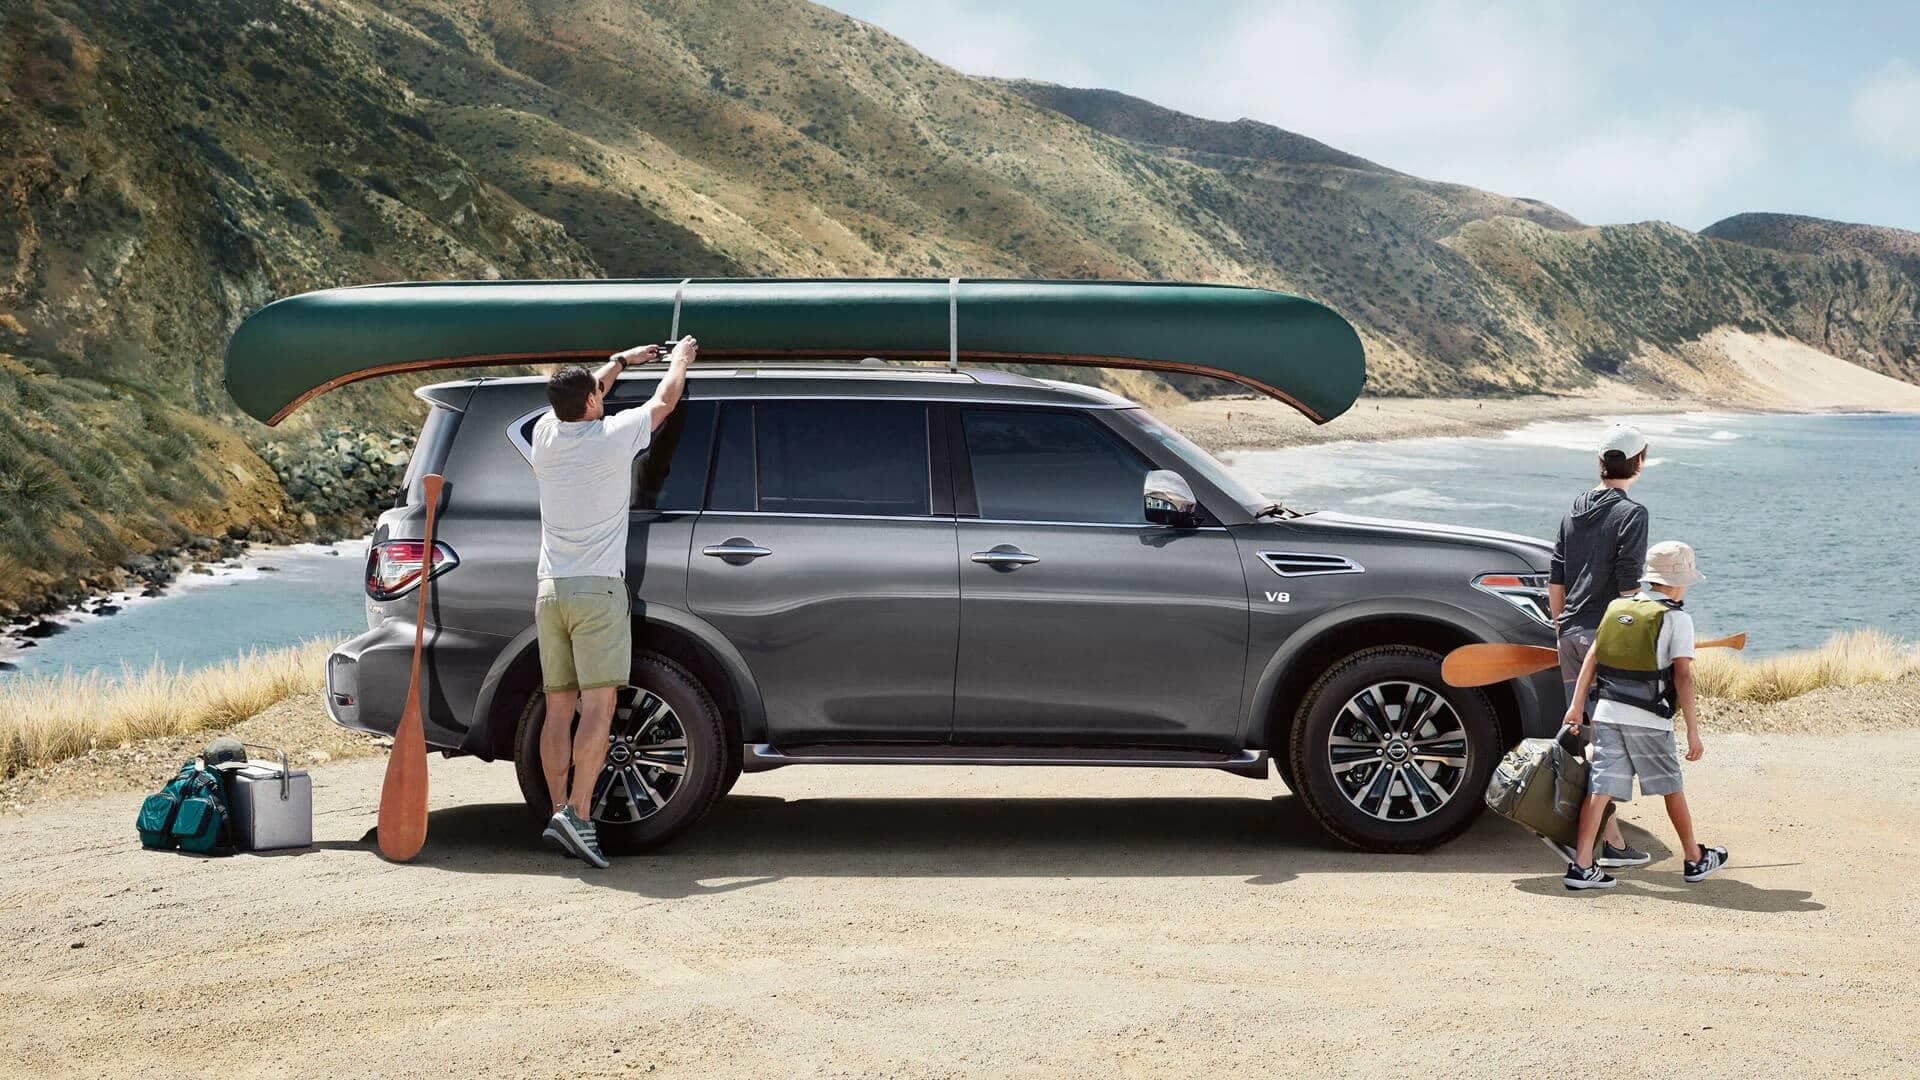 2020 Nissan Armada with canoe on top getting unloaded by a coastline